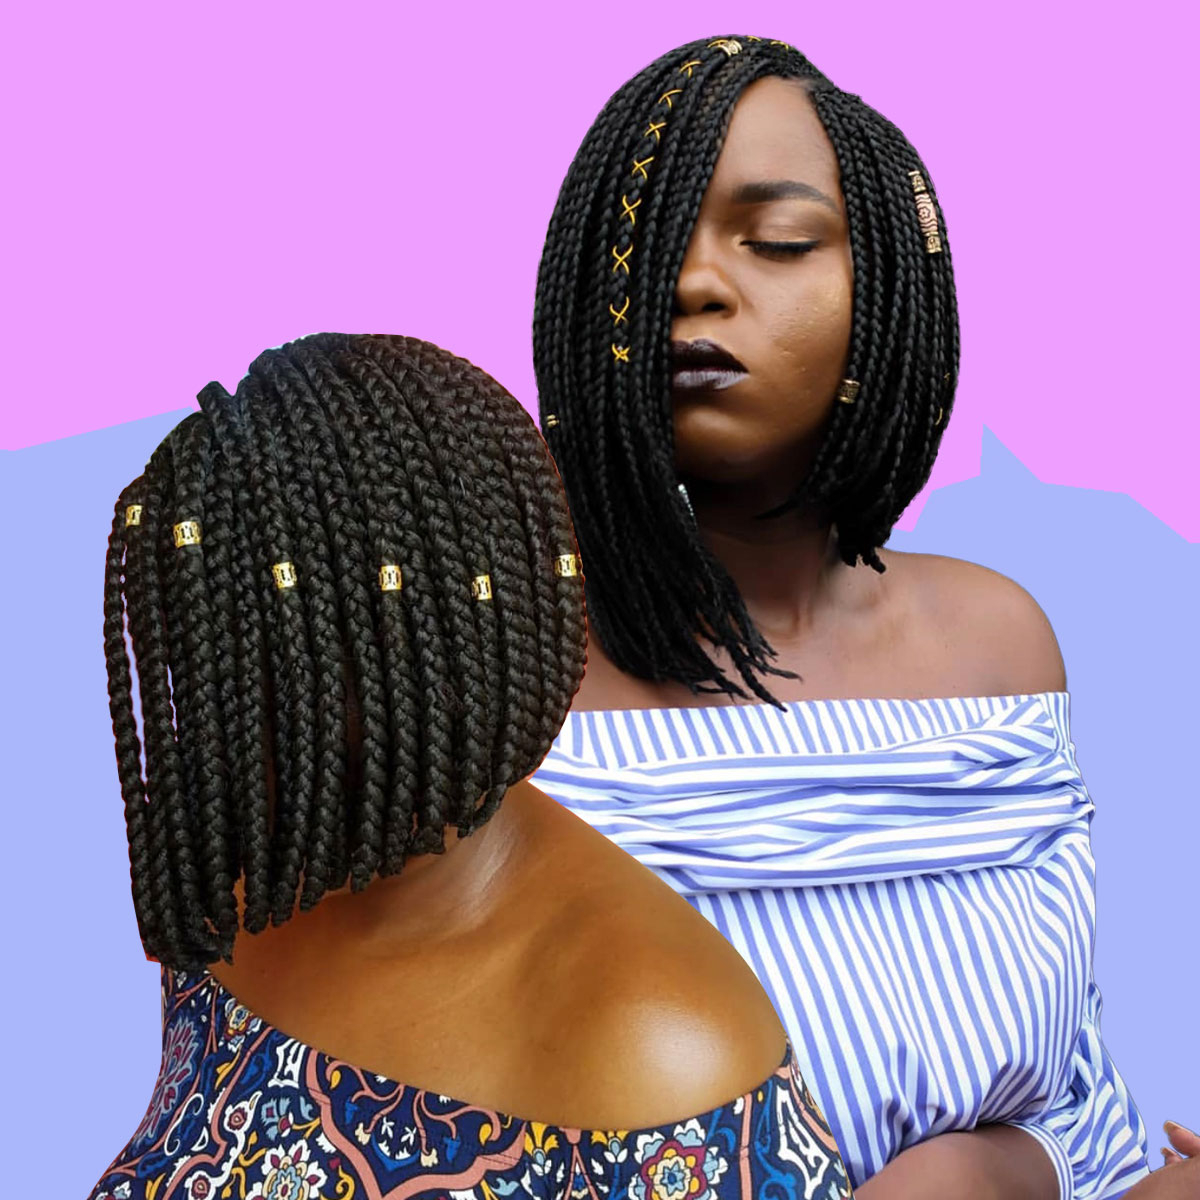 2019 Multicolored Bob Braid Hairstyles With Regard To 17 Beautiful Braided Bobs From Instagram You Need To Give A Try (View 1 of 20)